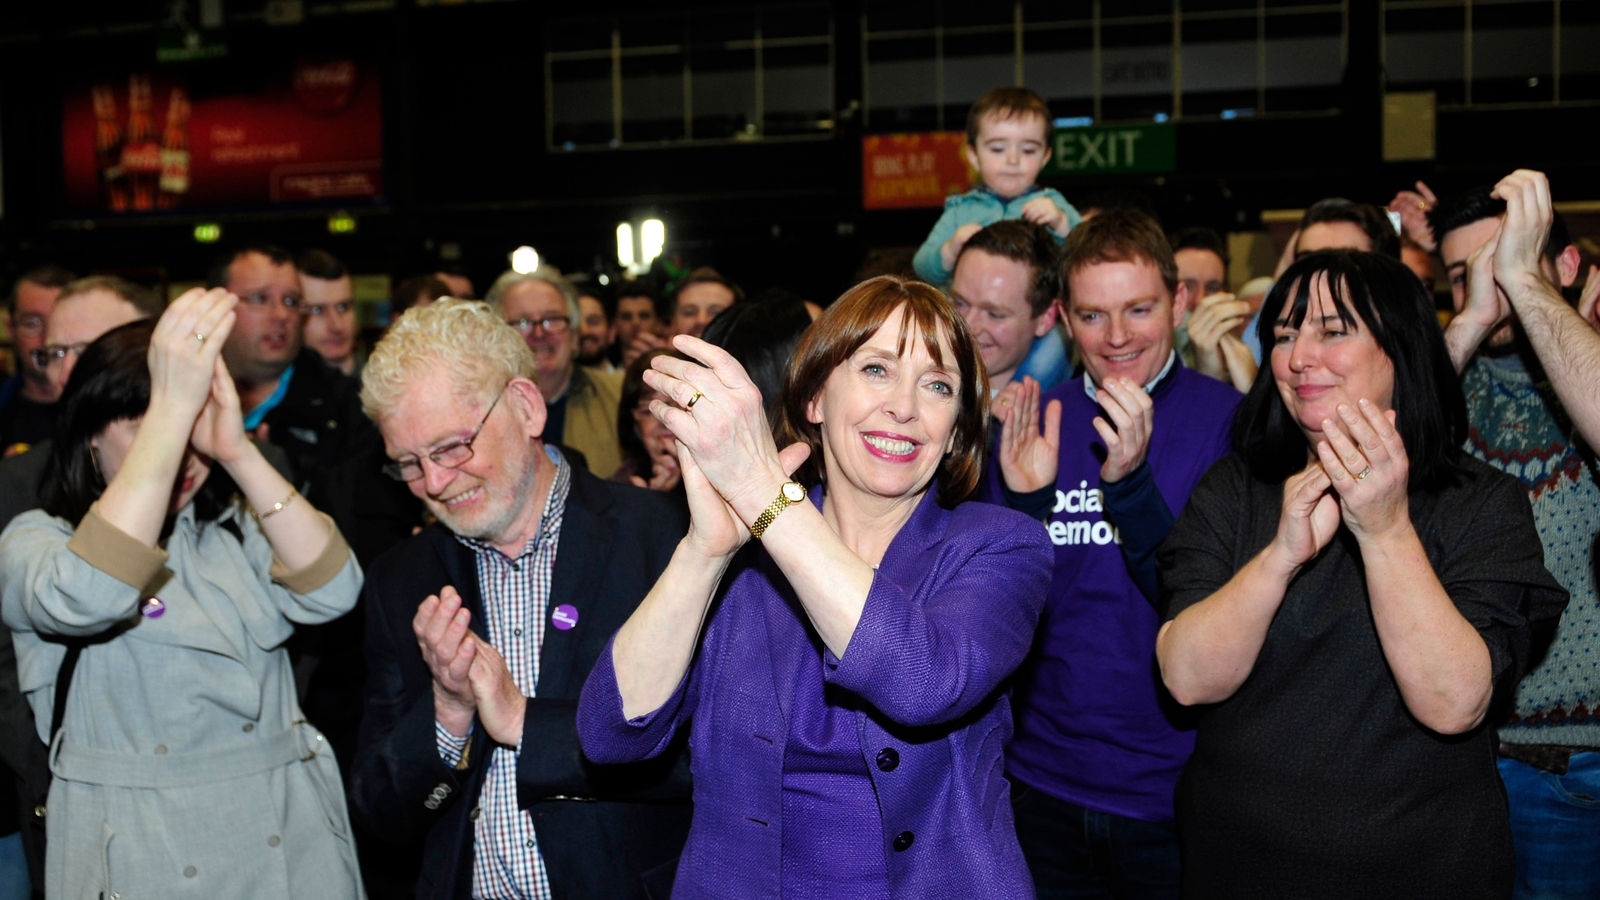 Image - Róisín Shortall pictured during the 2016 General Election